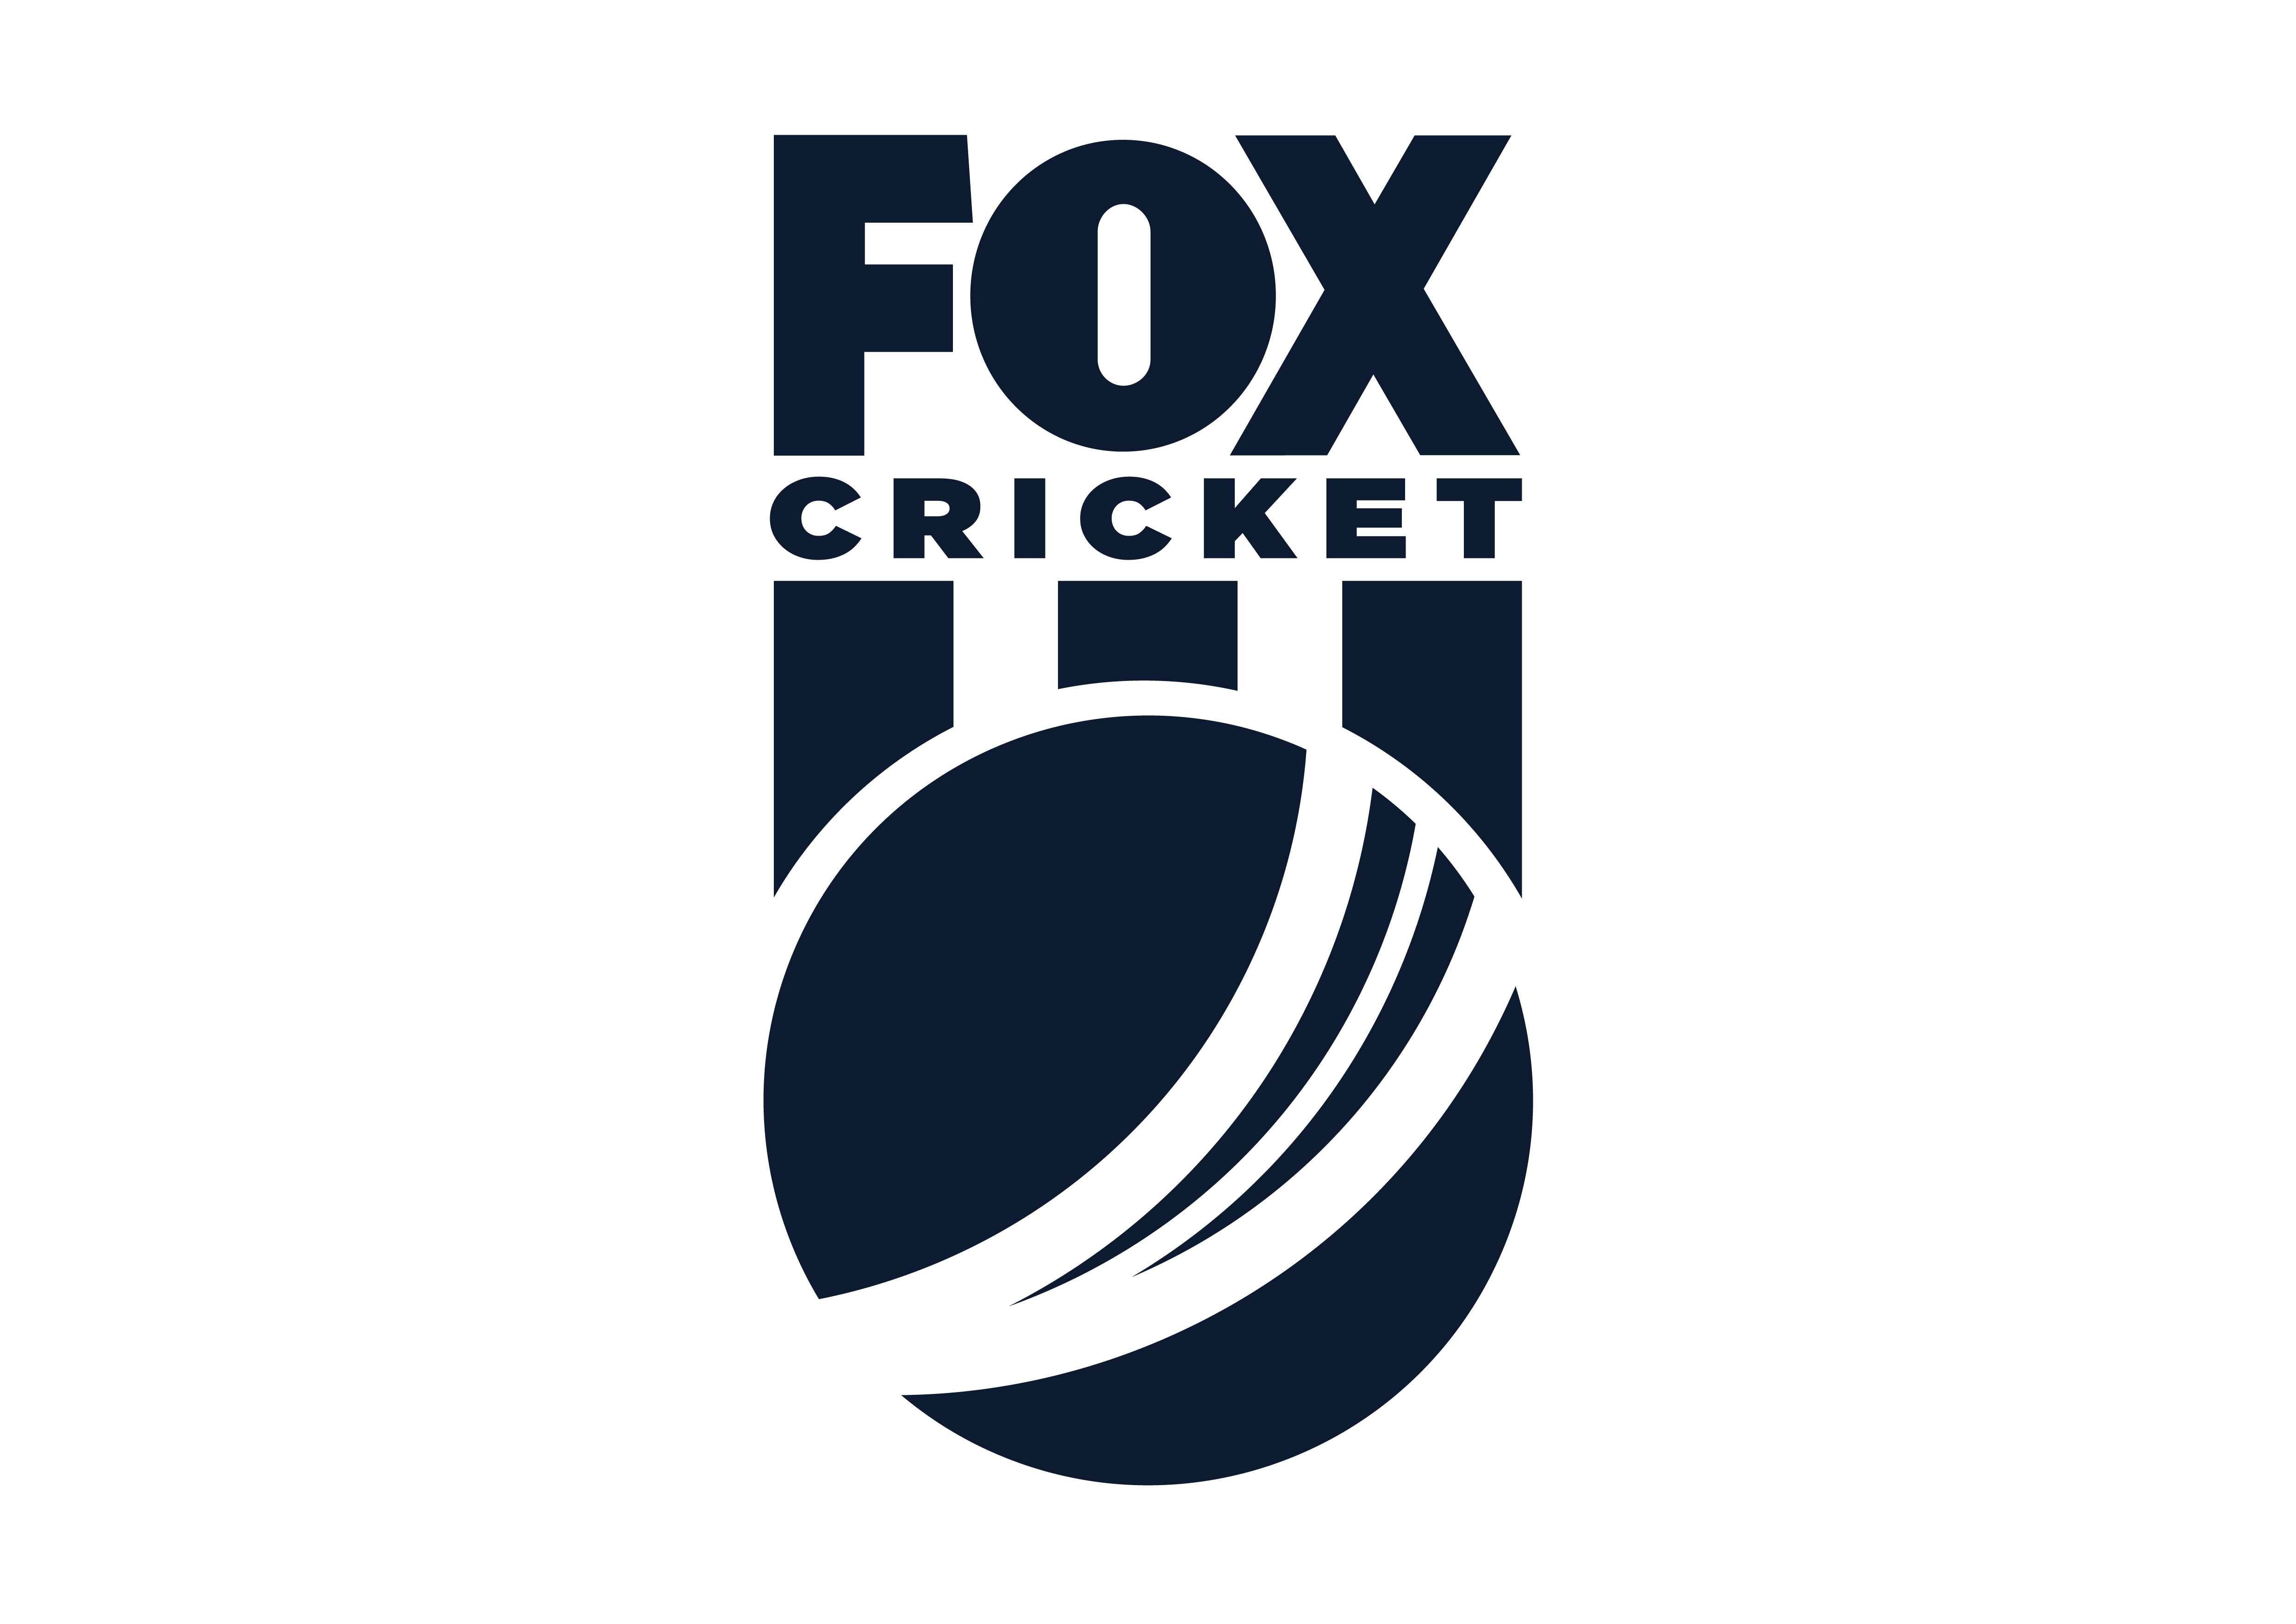 Fox cricket logo